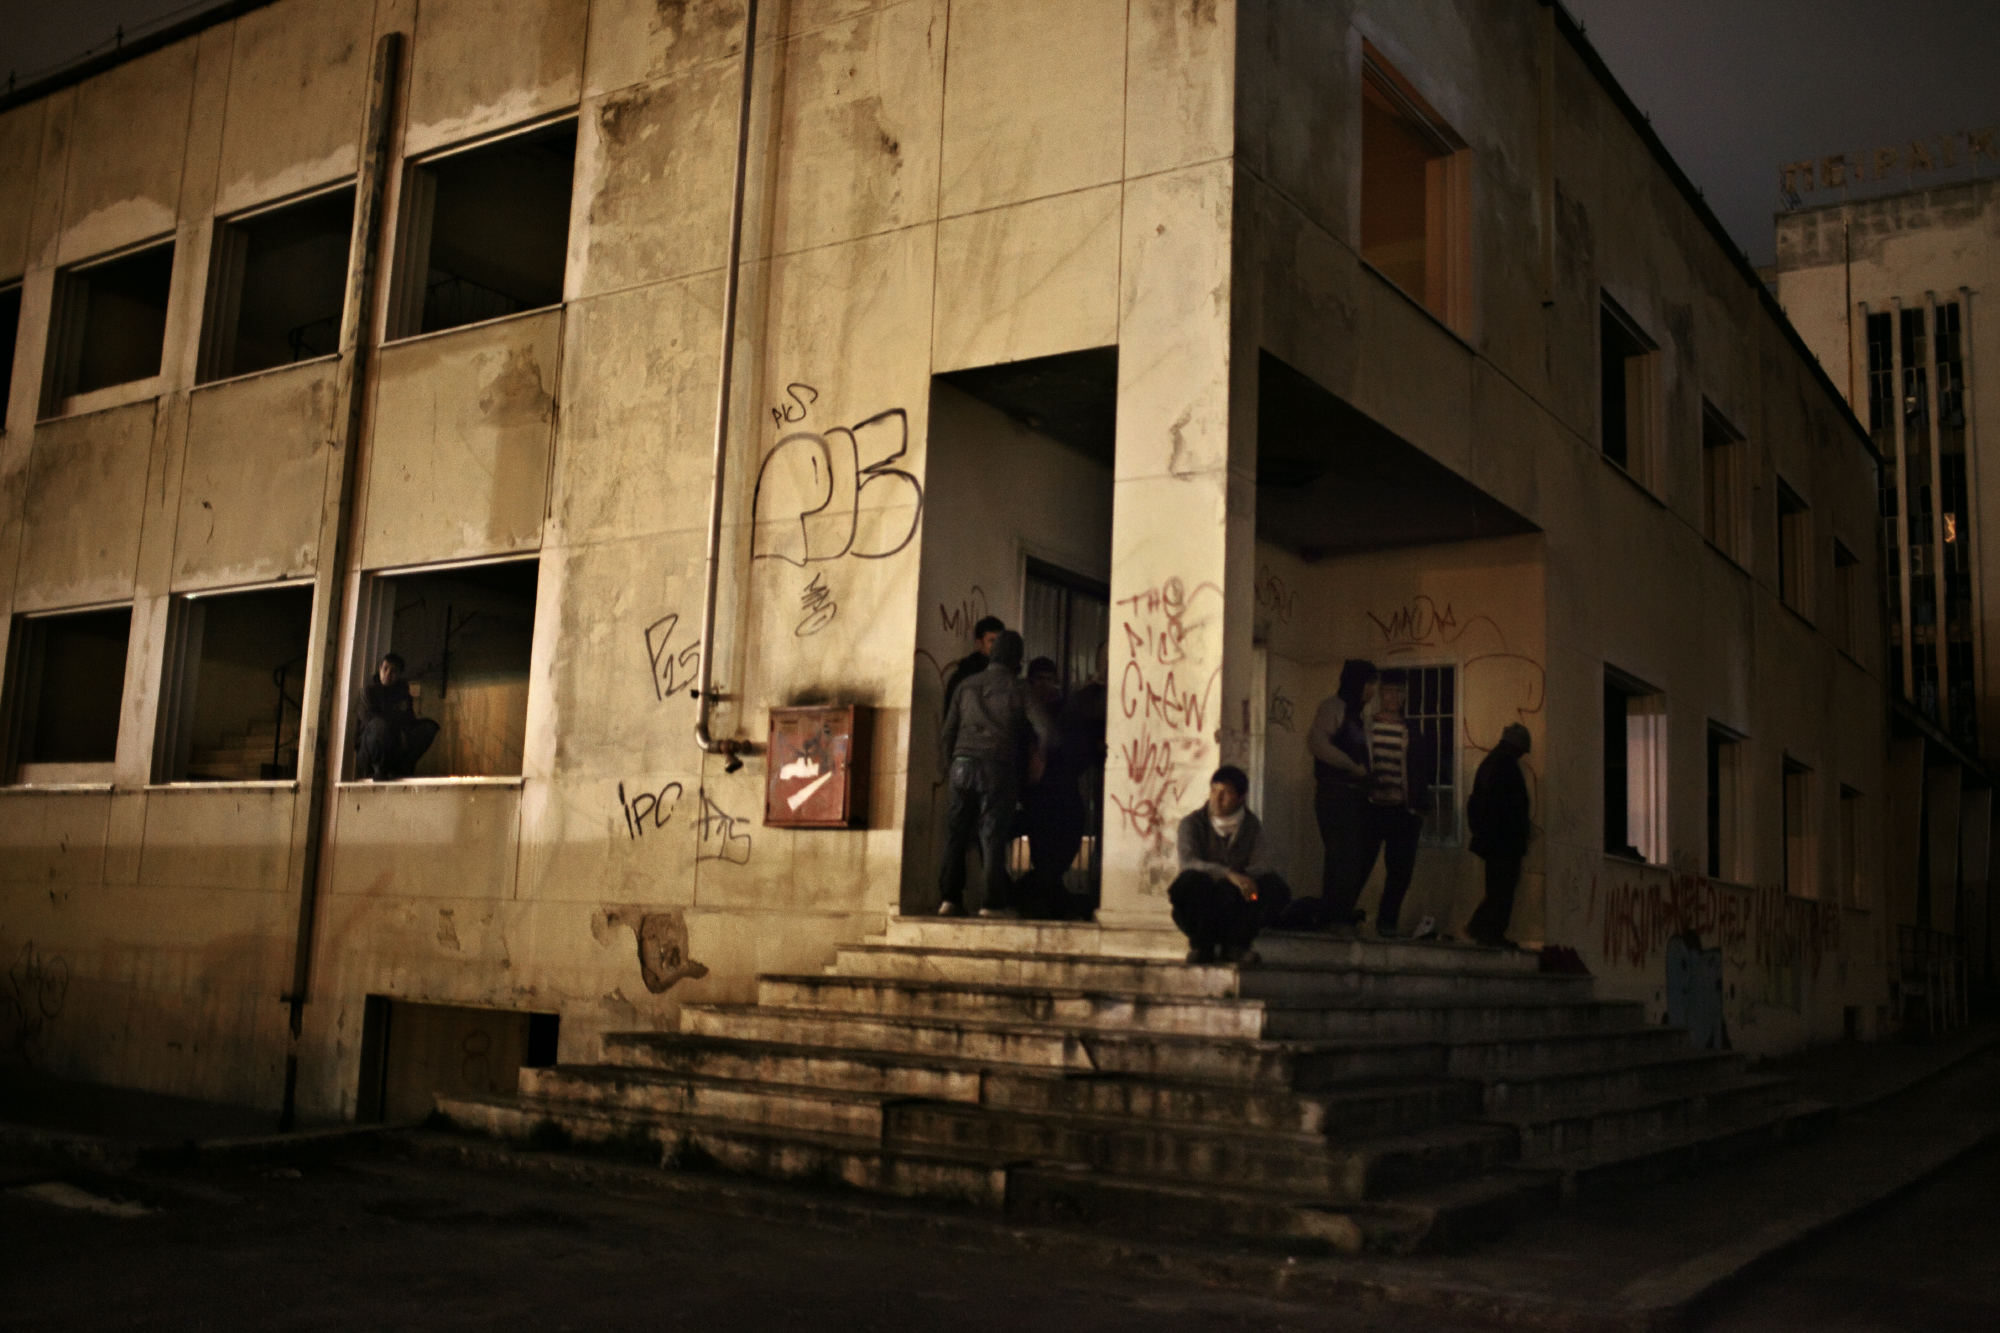 A group of Afghans in abandoned factory in Patras, Greece – one of the main escape points from Greece due to the numerous cargo ships that dock in the port and are bound for Italy.